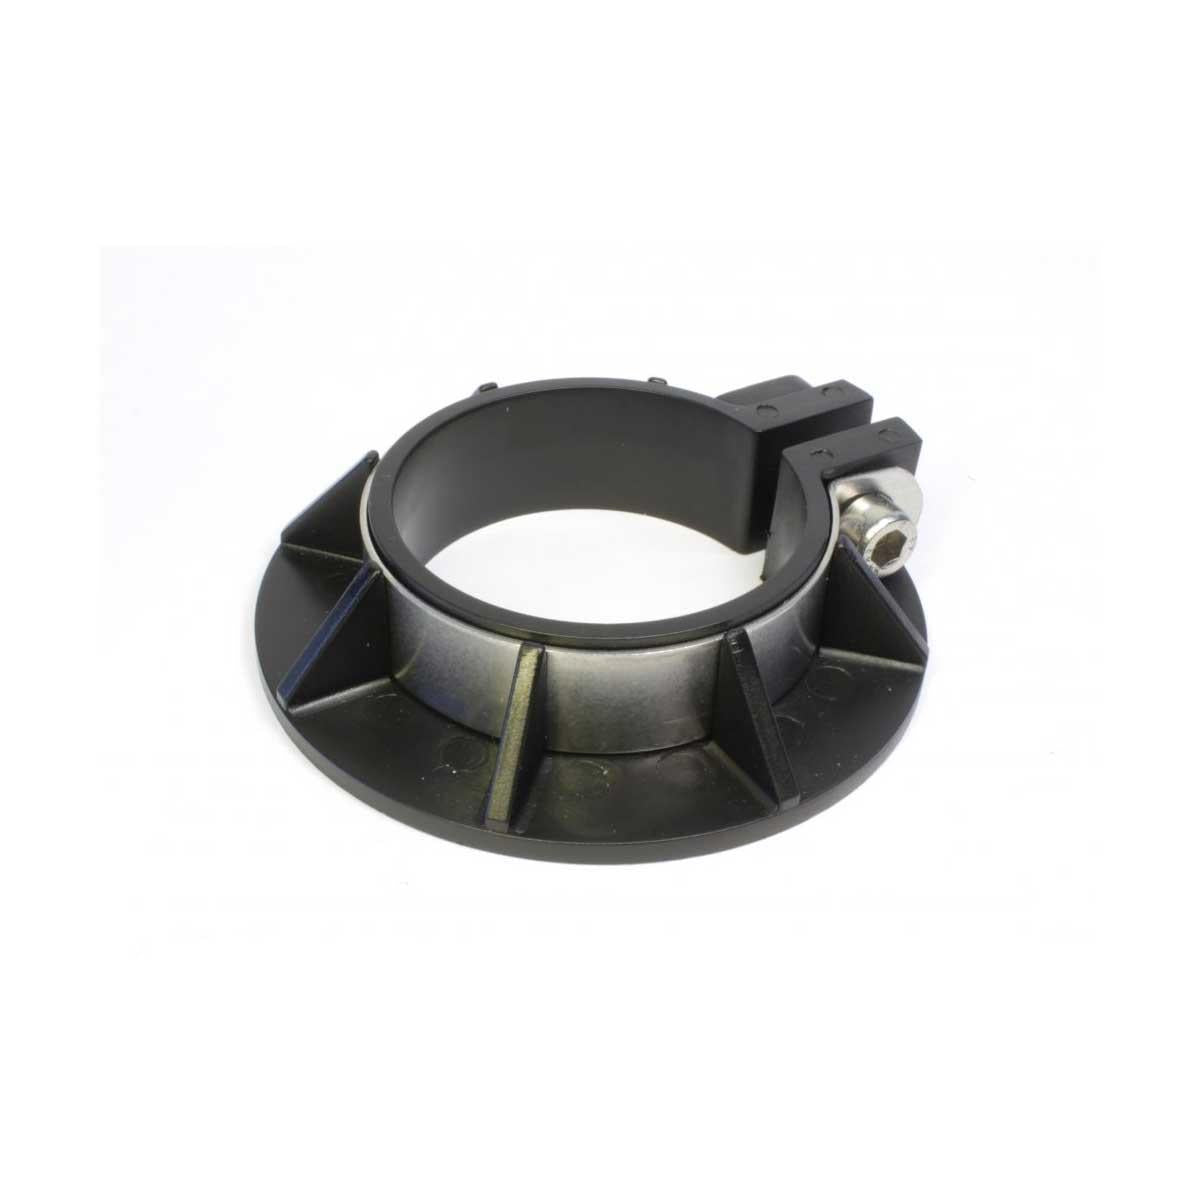 Cat Trax Wheel and Bearing Clamp